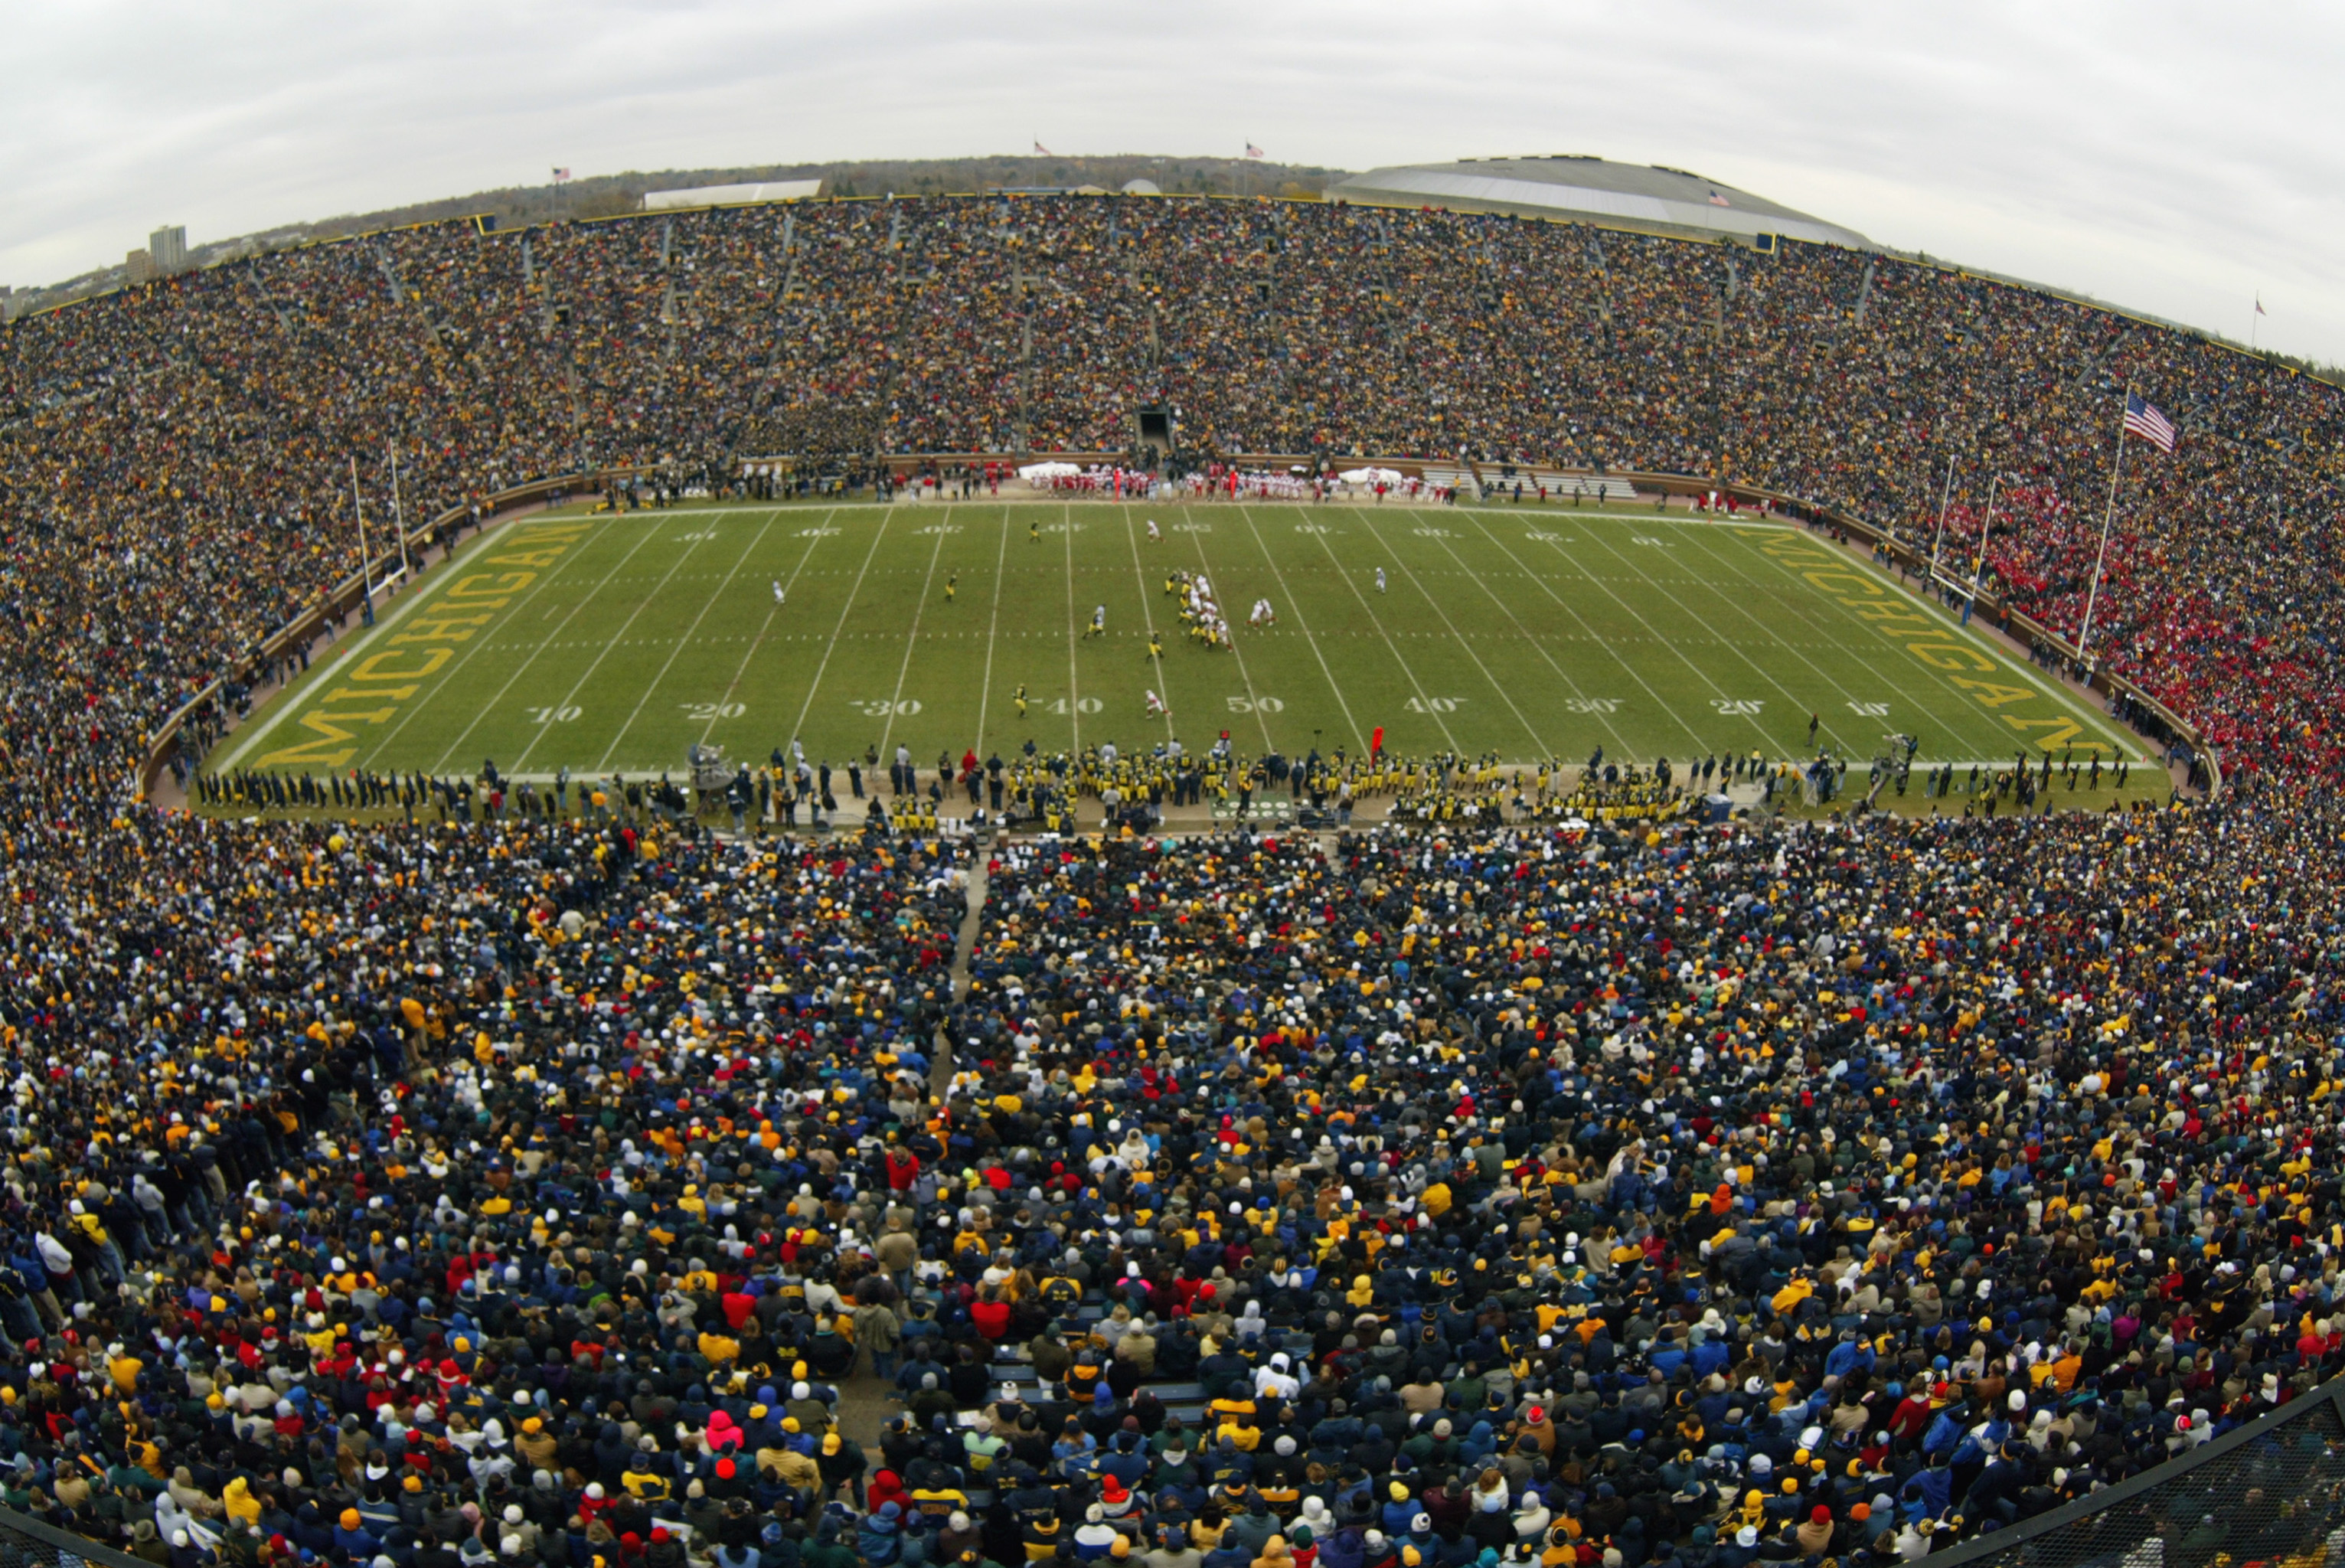 ANN ARBOR, MI - NOVEMBER 16:  A general view of Michigan Stadium, 'The Big House', during the game between the University of Michigan Wolverines and the University of Wisconsin-Madison Badgers at Michigan Stadium on November 16, 2002 in Ann Arbor, Michiga